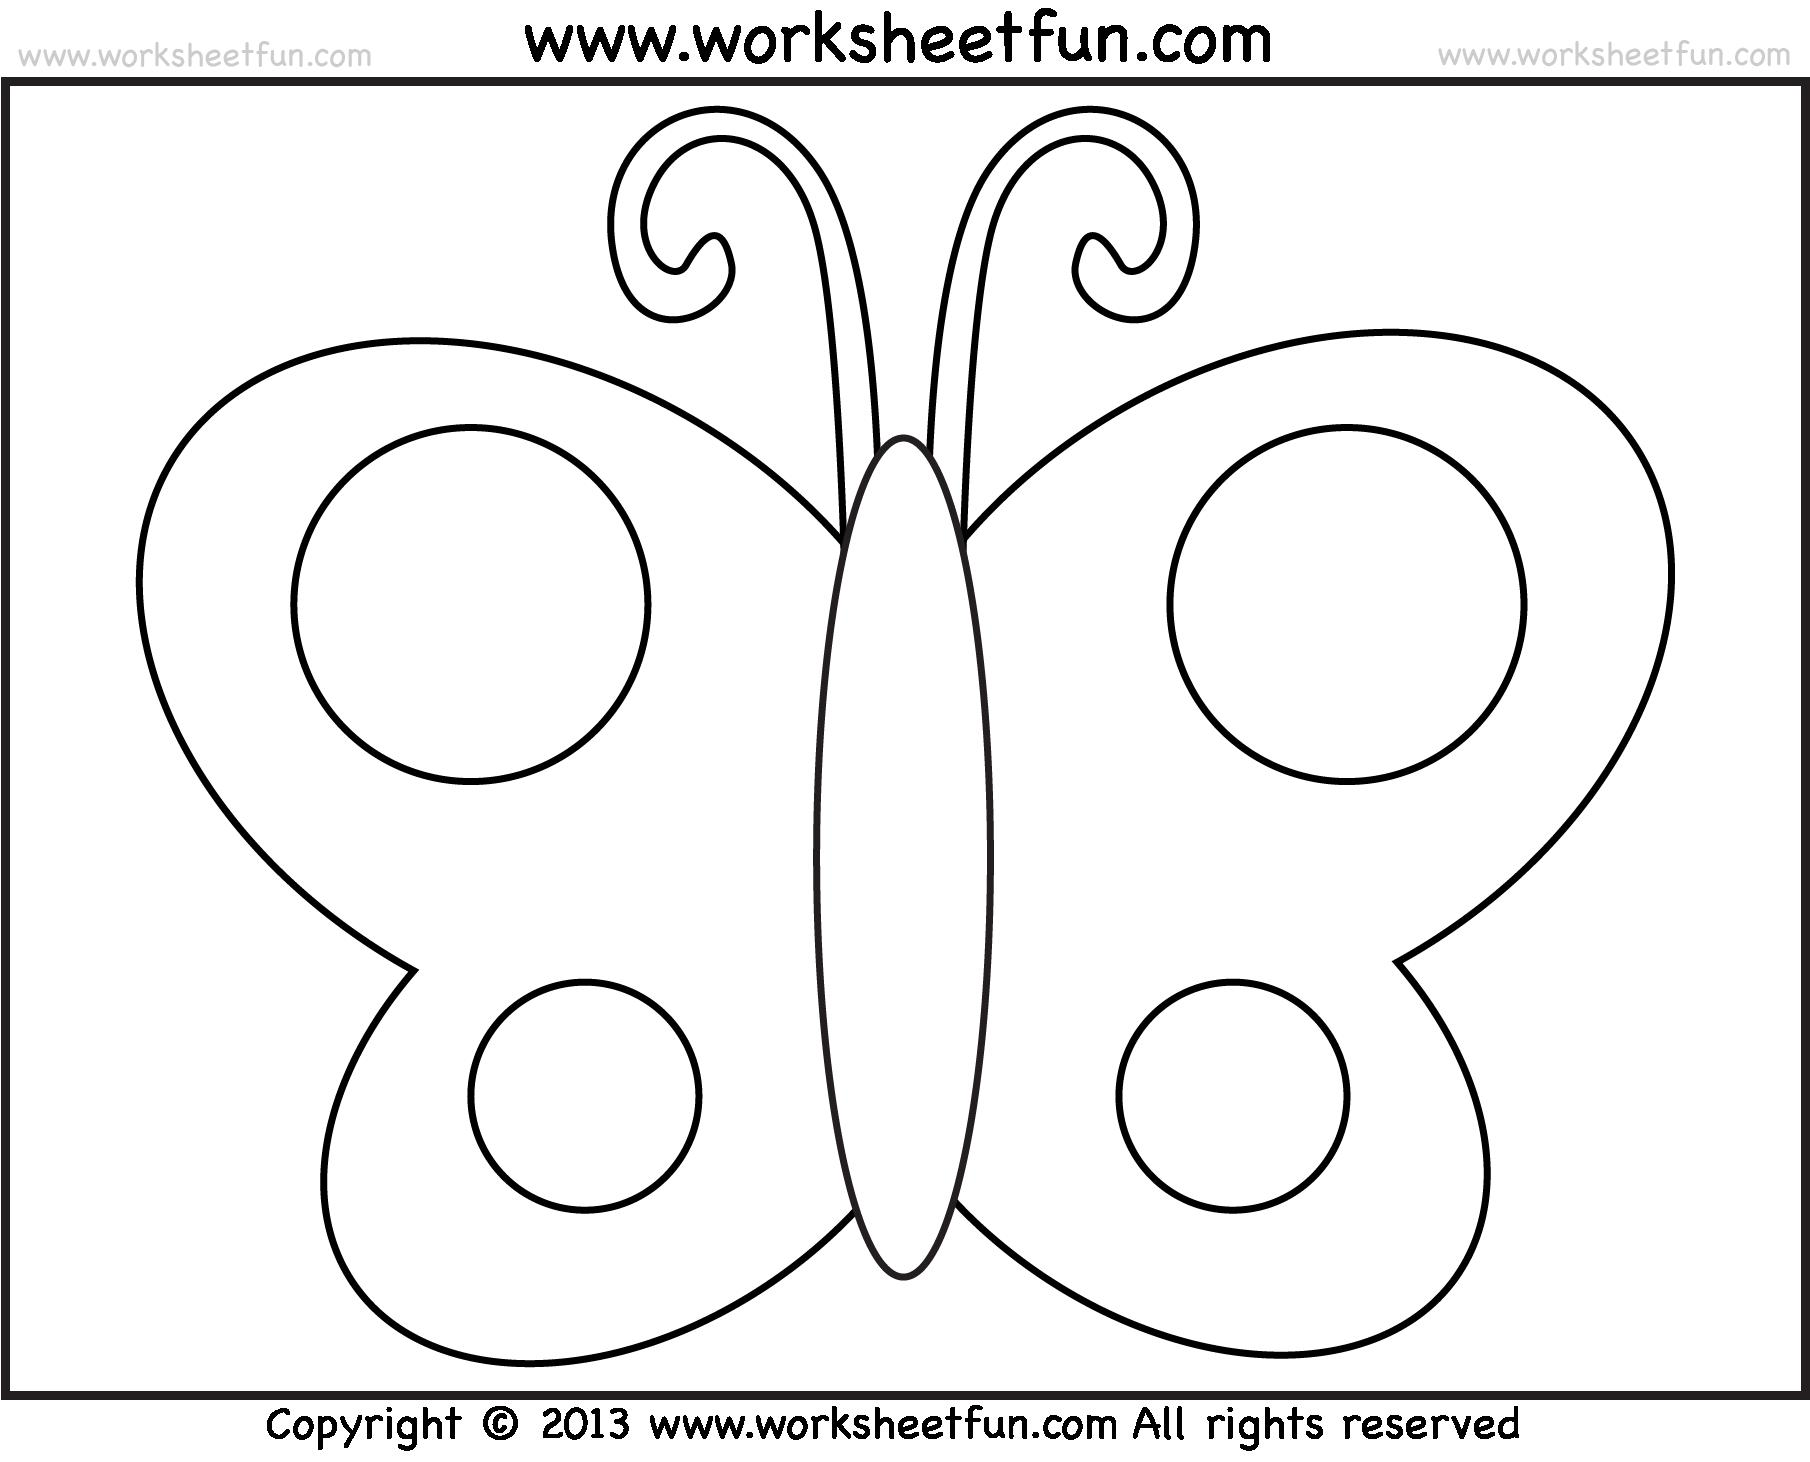 Preschool Worksheets Age 4 Uk